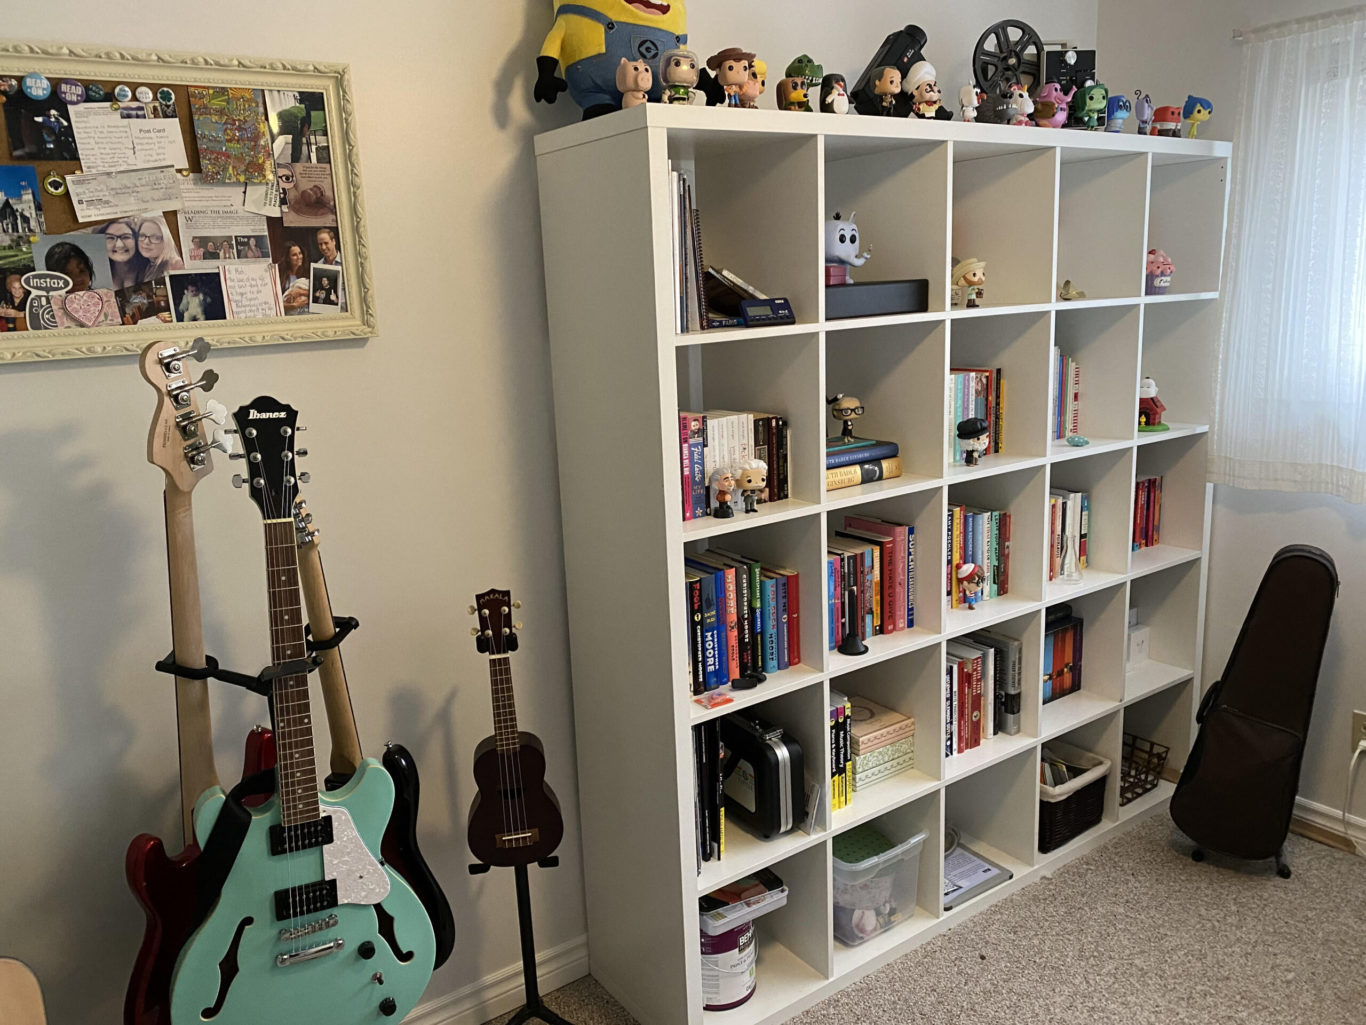 A bunch of electric guitars and a ukulele on stands next to a large shelving unit filled with books and Pop Funkos